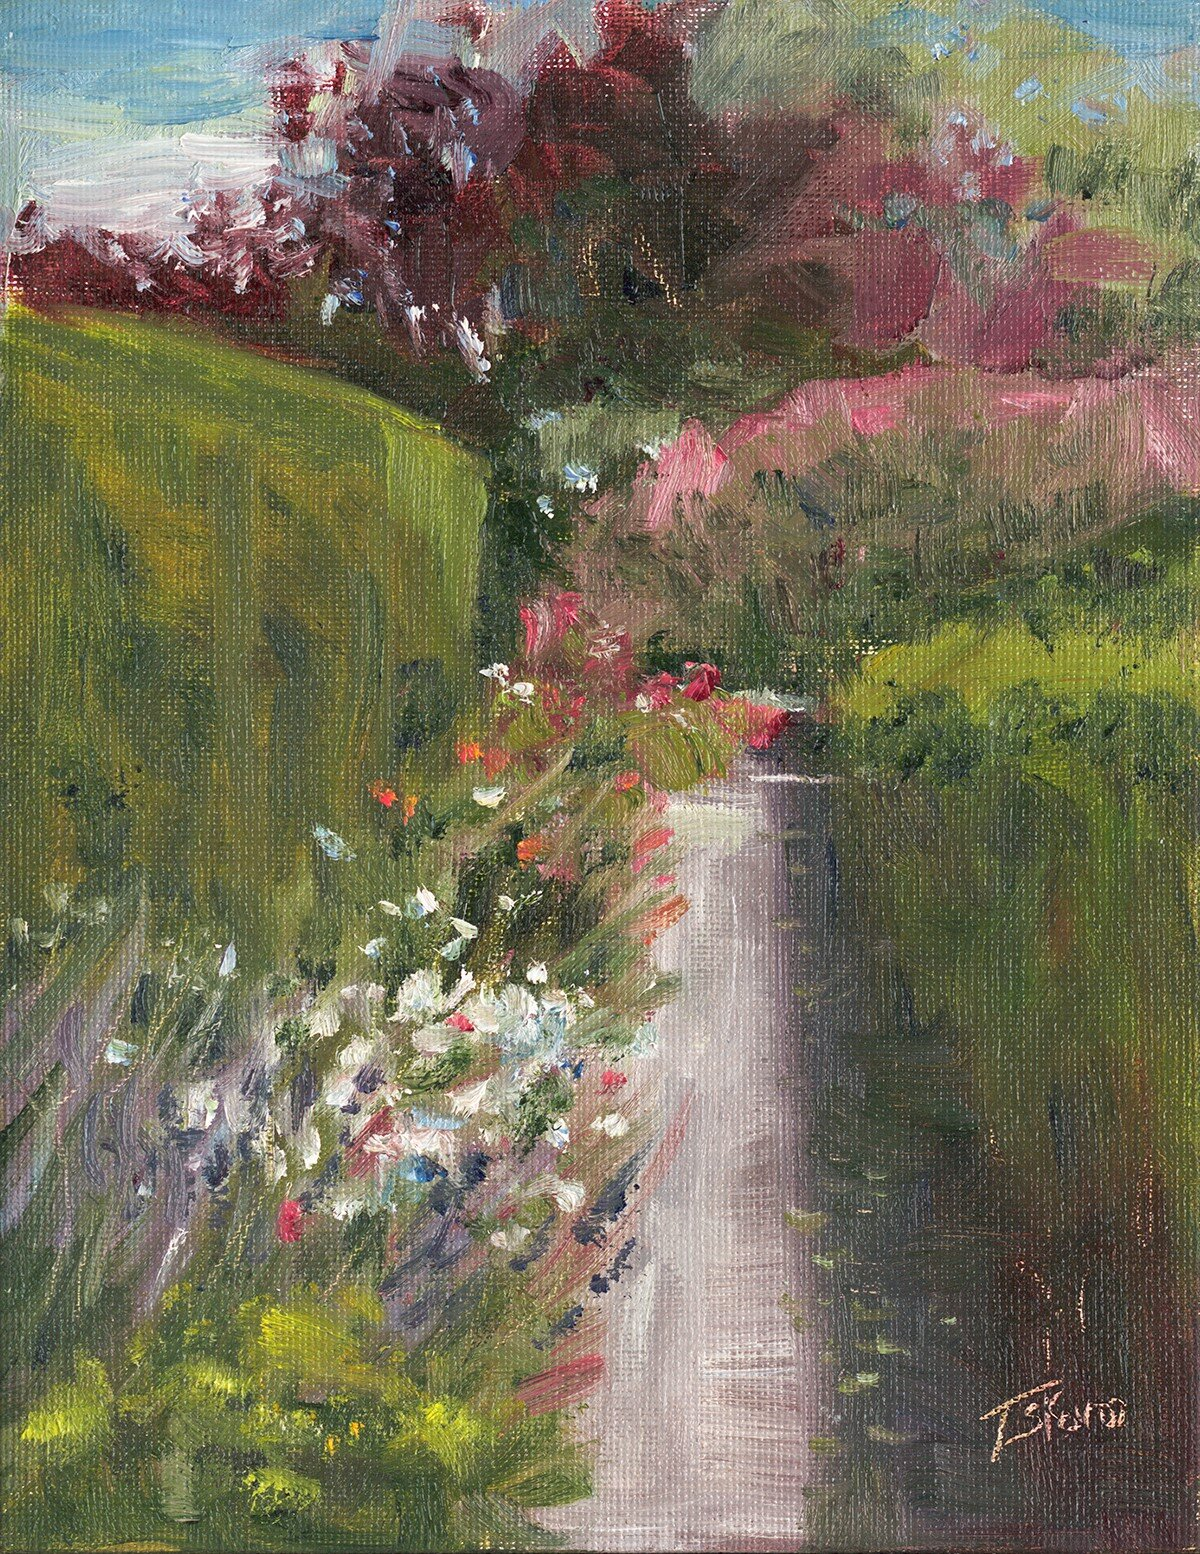 """""""Perennial Path""""  Fuller Gardens, No. Hampton, NH - 9"""" x 7"""" oil on canvas panel in natural finished floater frame"""